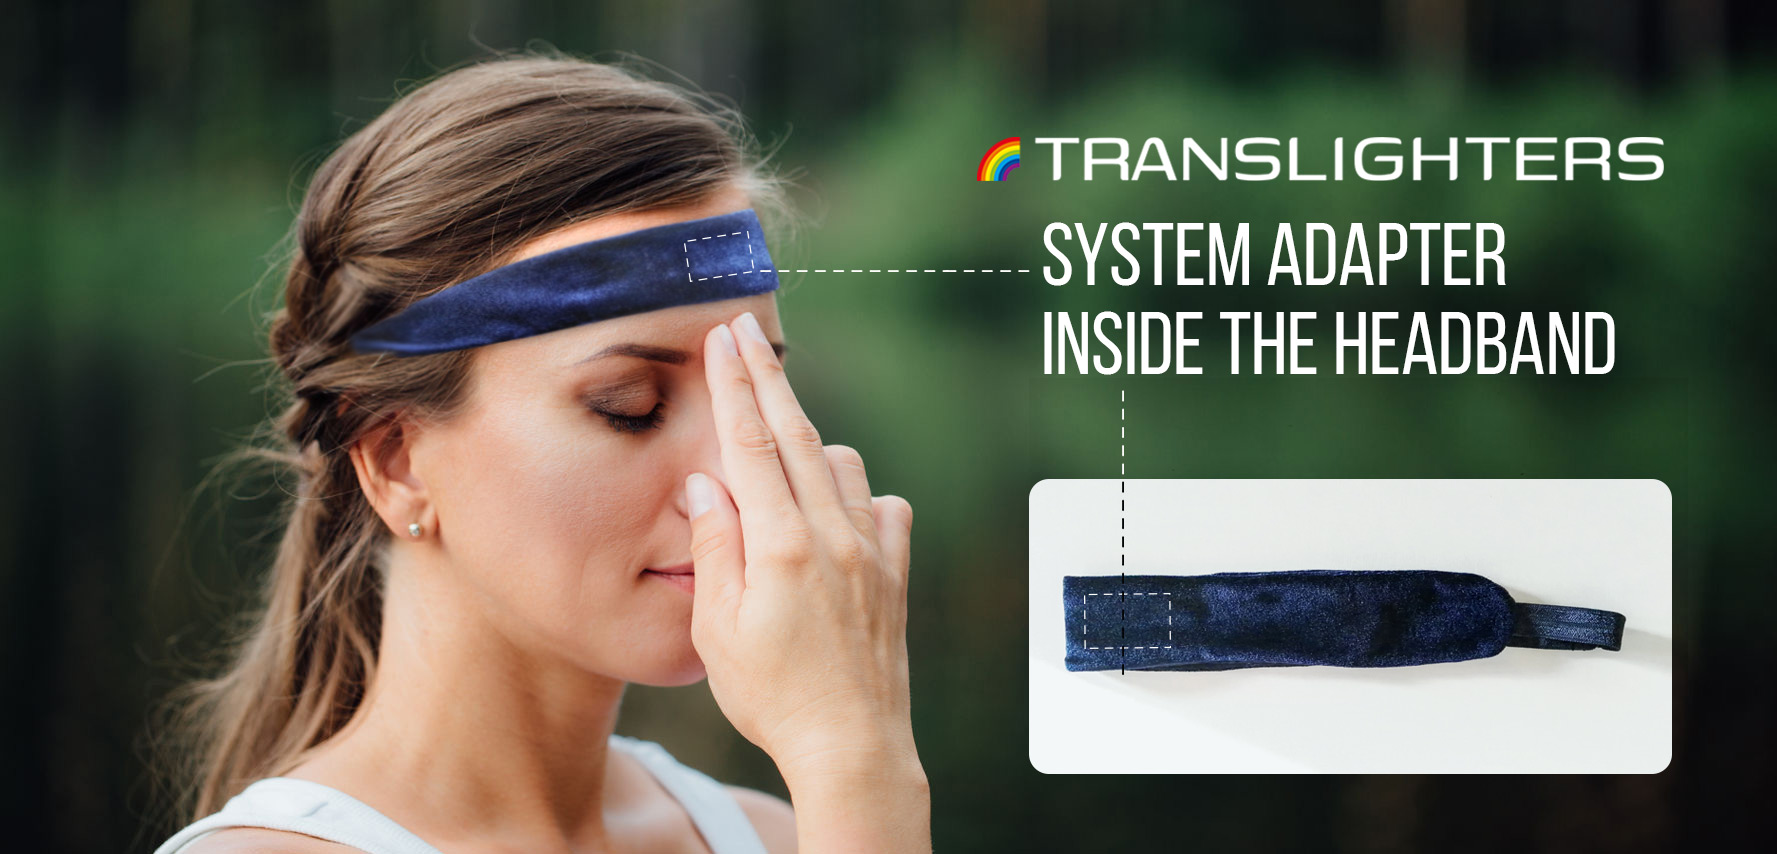 The headband system adapter TRANSLIGHTER EUREKA tailors the system of human knowledge to other knowledge systems. The TRANSLIGHTER EUREKA helps to construct new knowledge, creating conditions for striking effect.